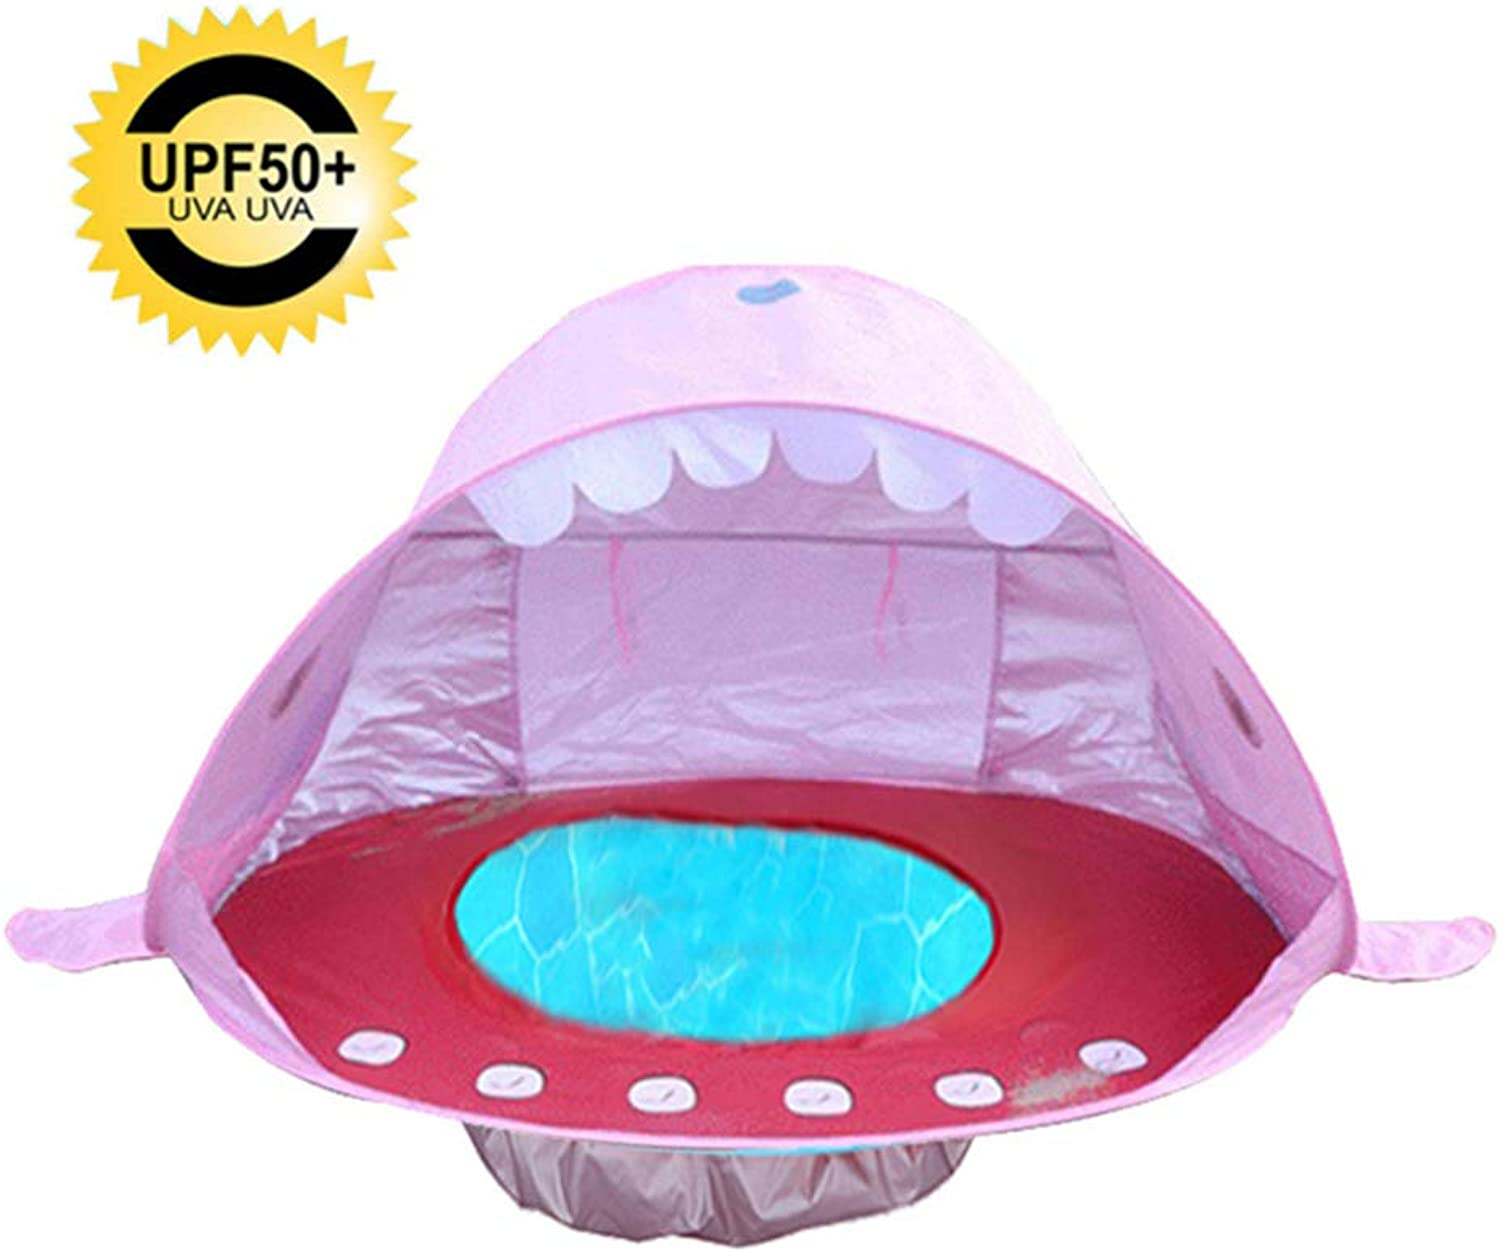 Baby Beach Tent, Shark Pool Tent Baby BathTravel Bed Portable Pop Up Beach Tent, UV Sun Predection with Storage Bag for Outdoor Beach Holiday